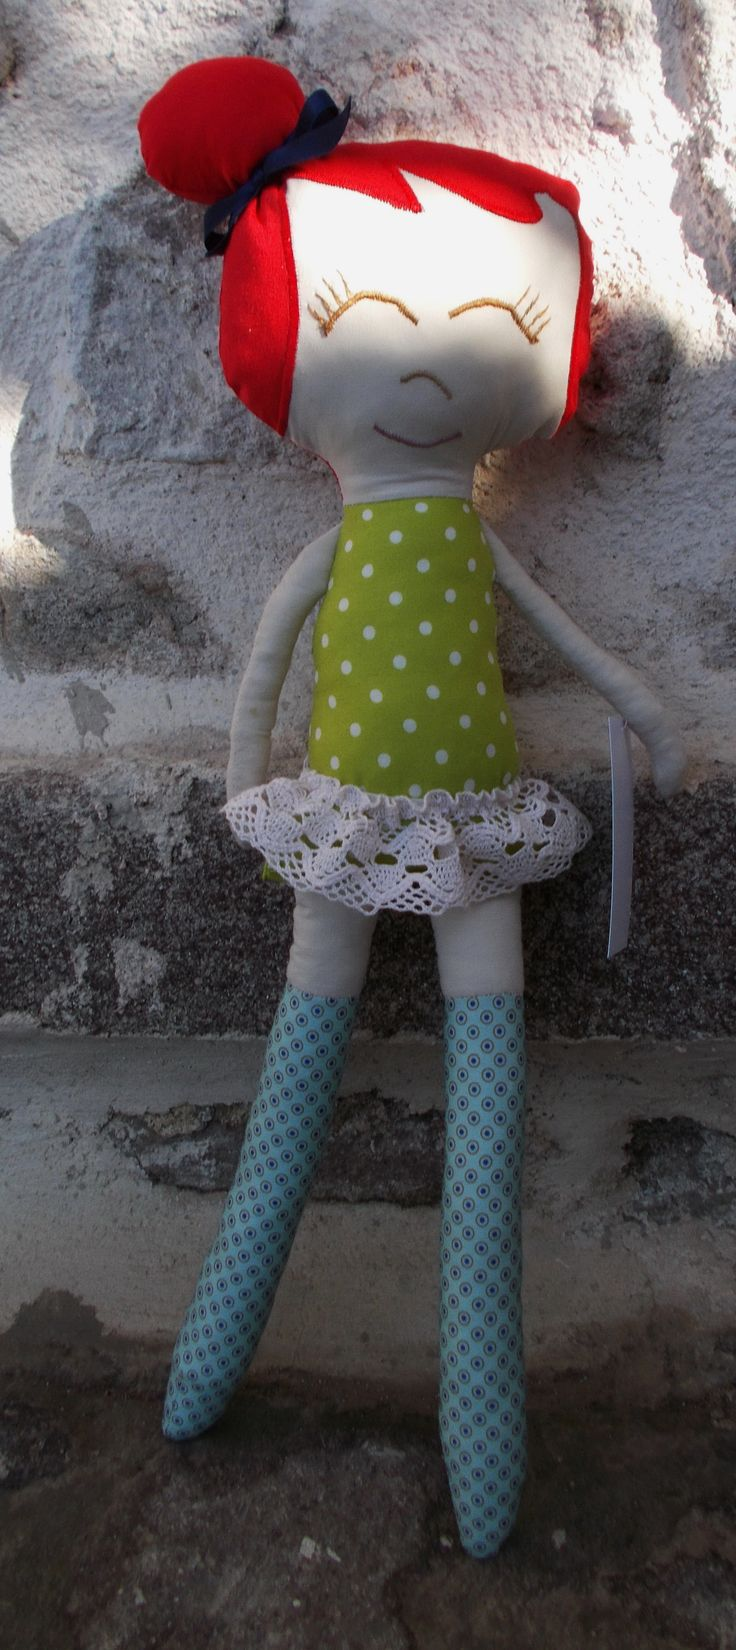 Soft toy doll